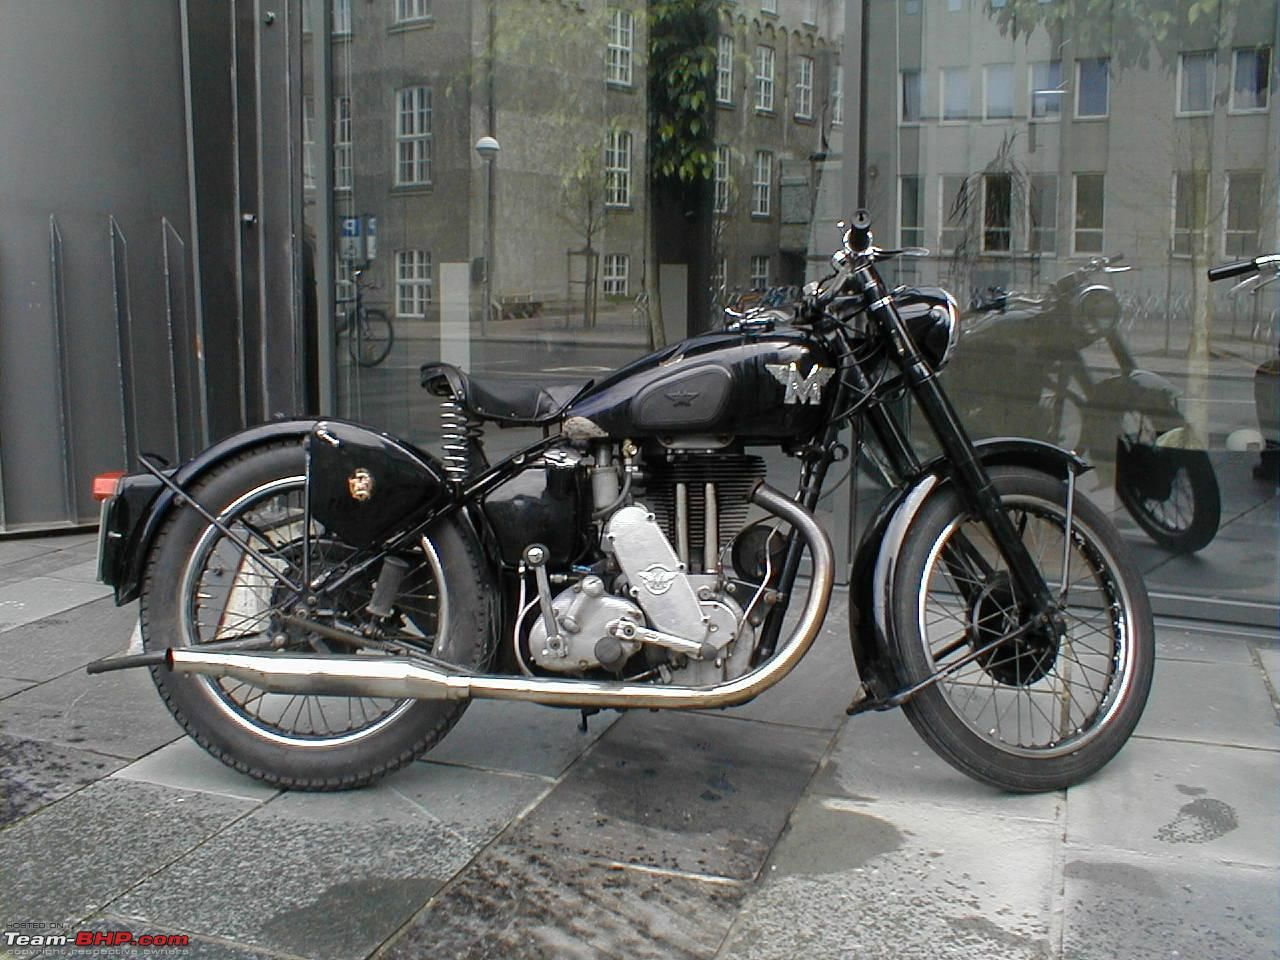 Matchless g 11 csr for sale 1958 on car and classic uk c544589 - Cars